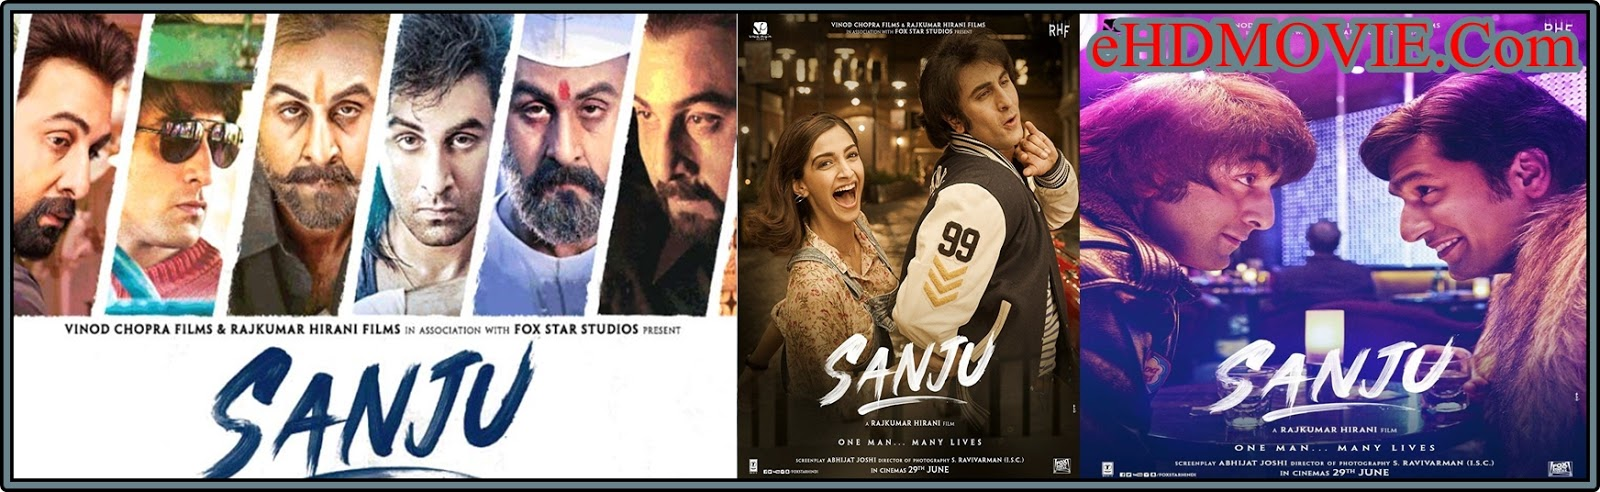 Sanju 2018 Full Movie Hindi 1080p – 720p – HEVC – 480p ORG WEB-DL 200MB - 450MB – 700MB – 1.4GB – 2.4GB ESubs Free Download